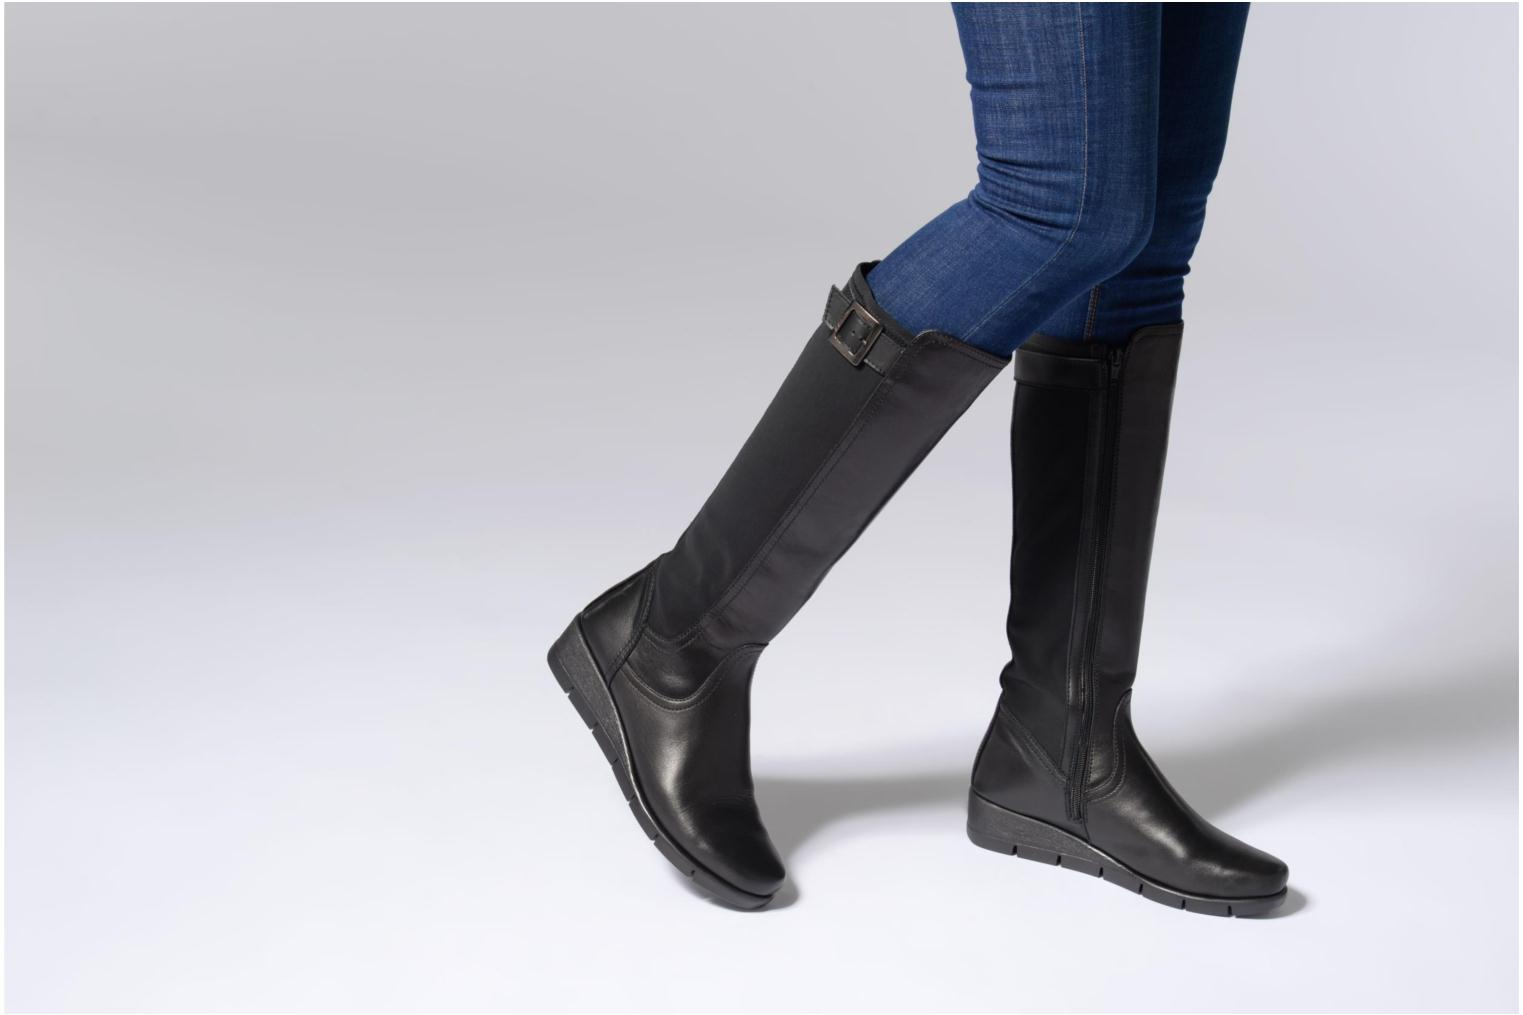 Flexx The The The Panboot The Flexx Black Black Flexx Panboot Panboot Flexx Black Panboot tS5wf